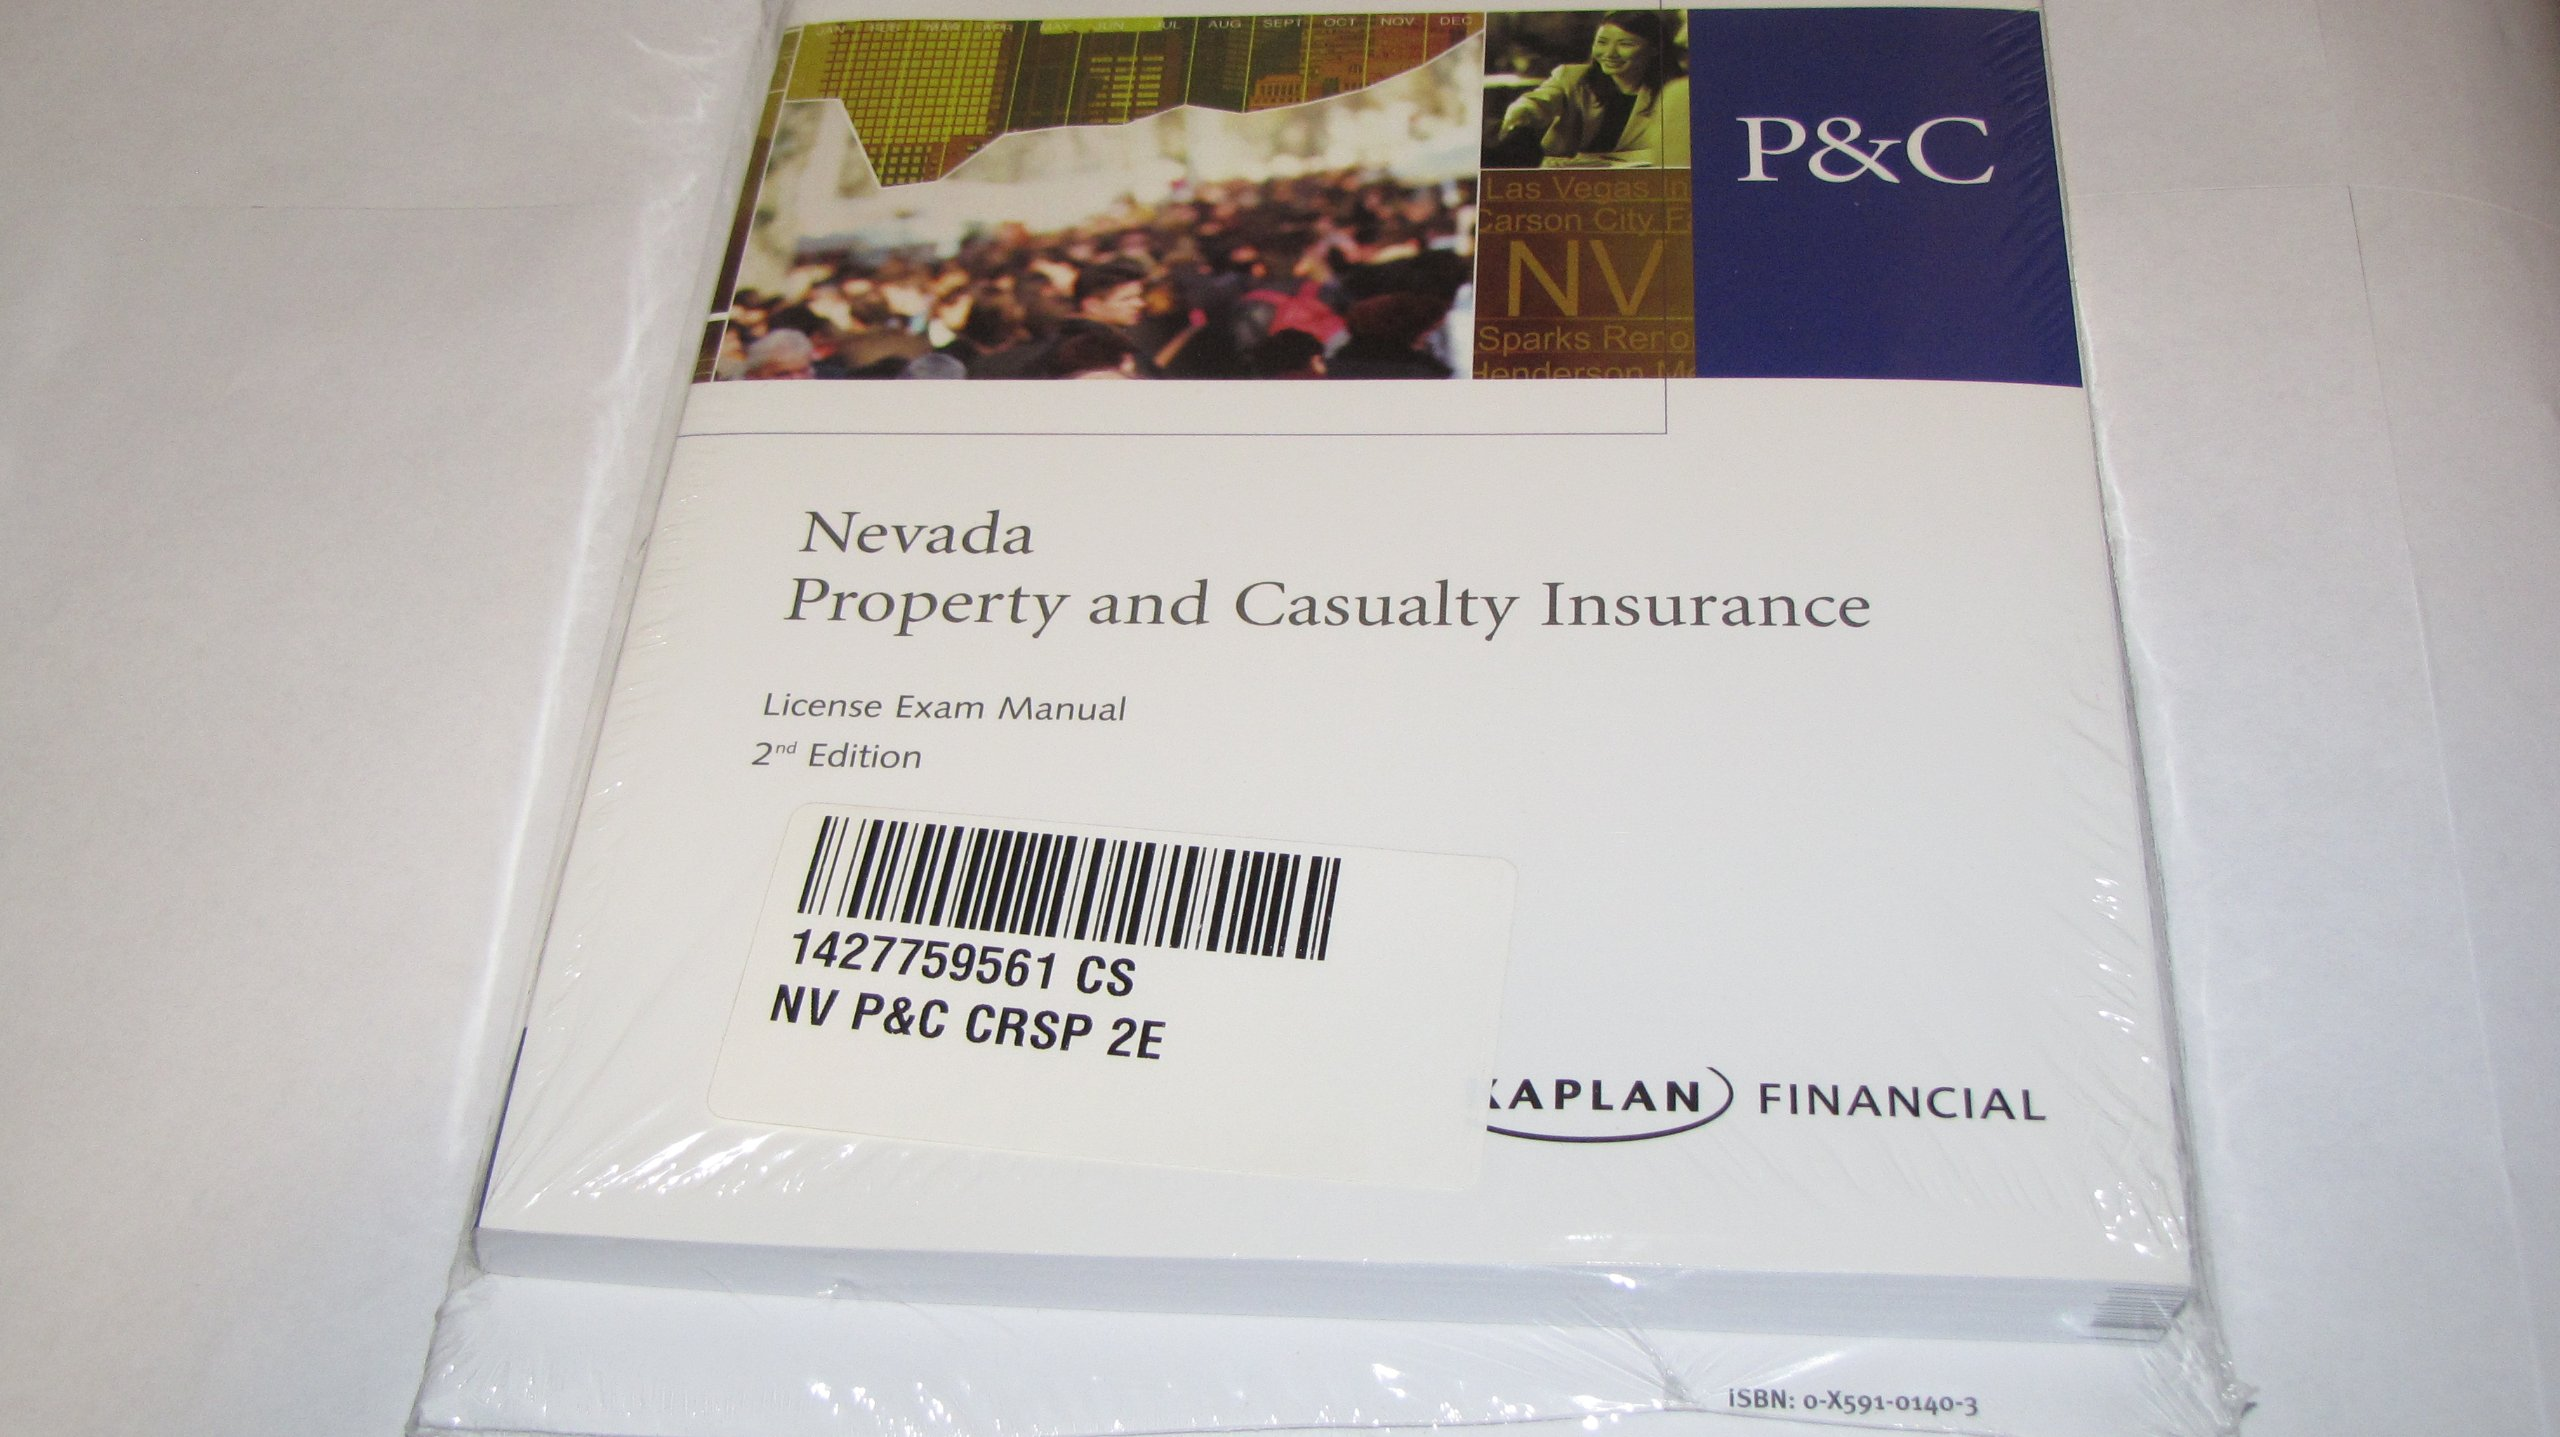 Nevada Property and Casualty Insurance